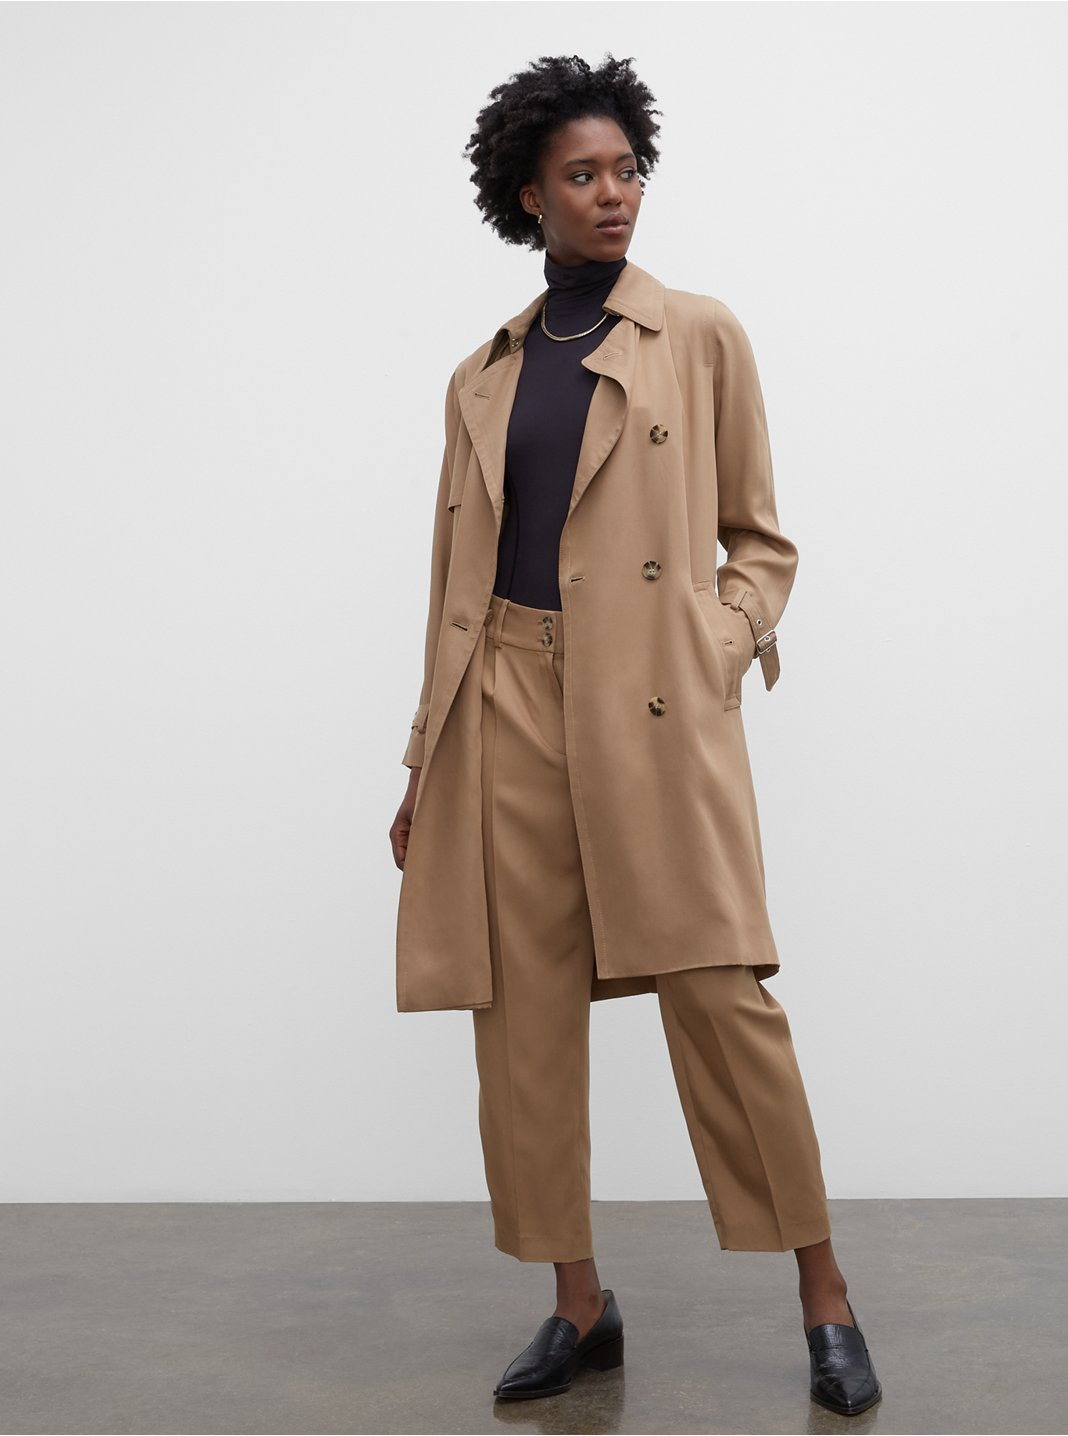 The Everywear Trench